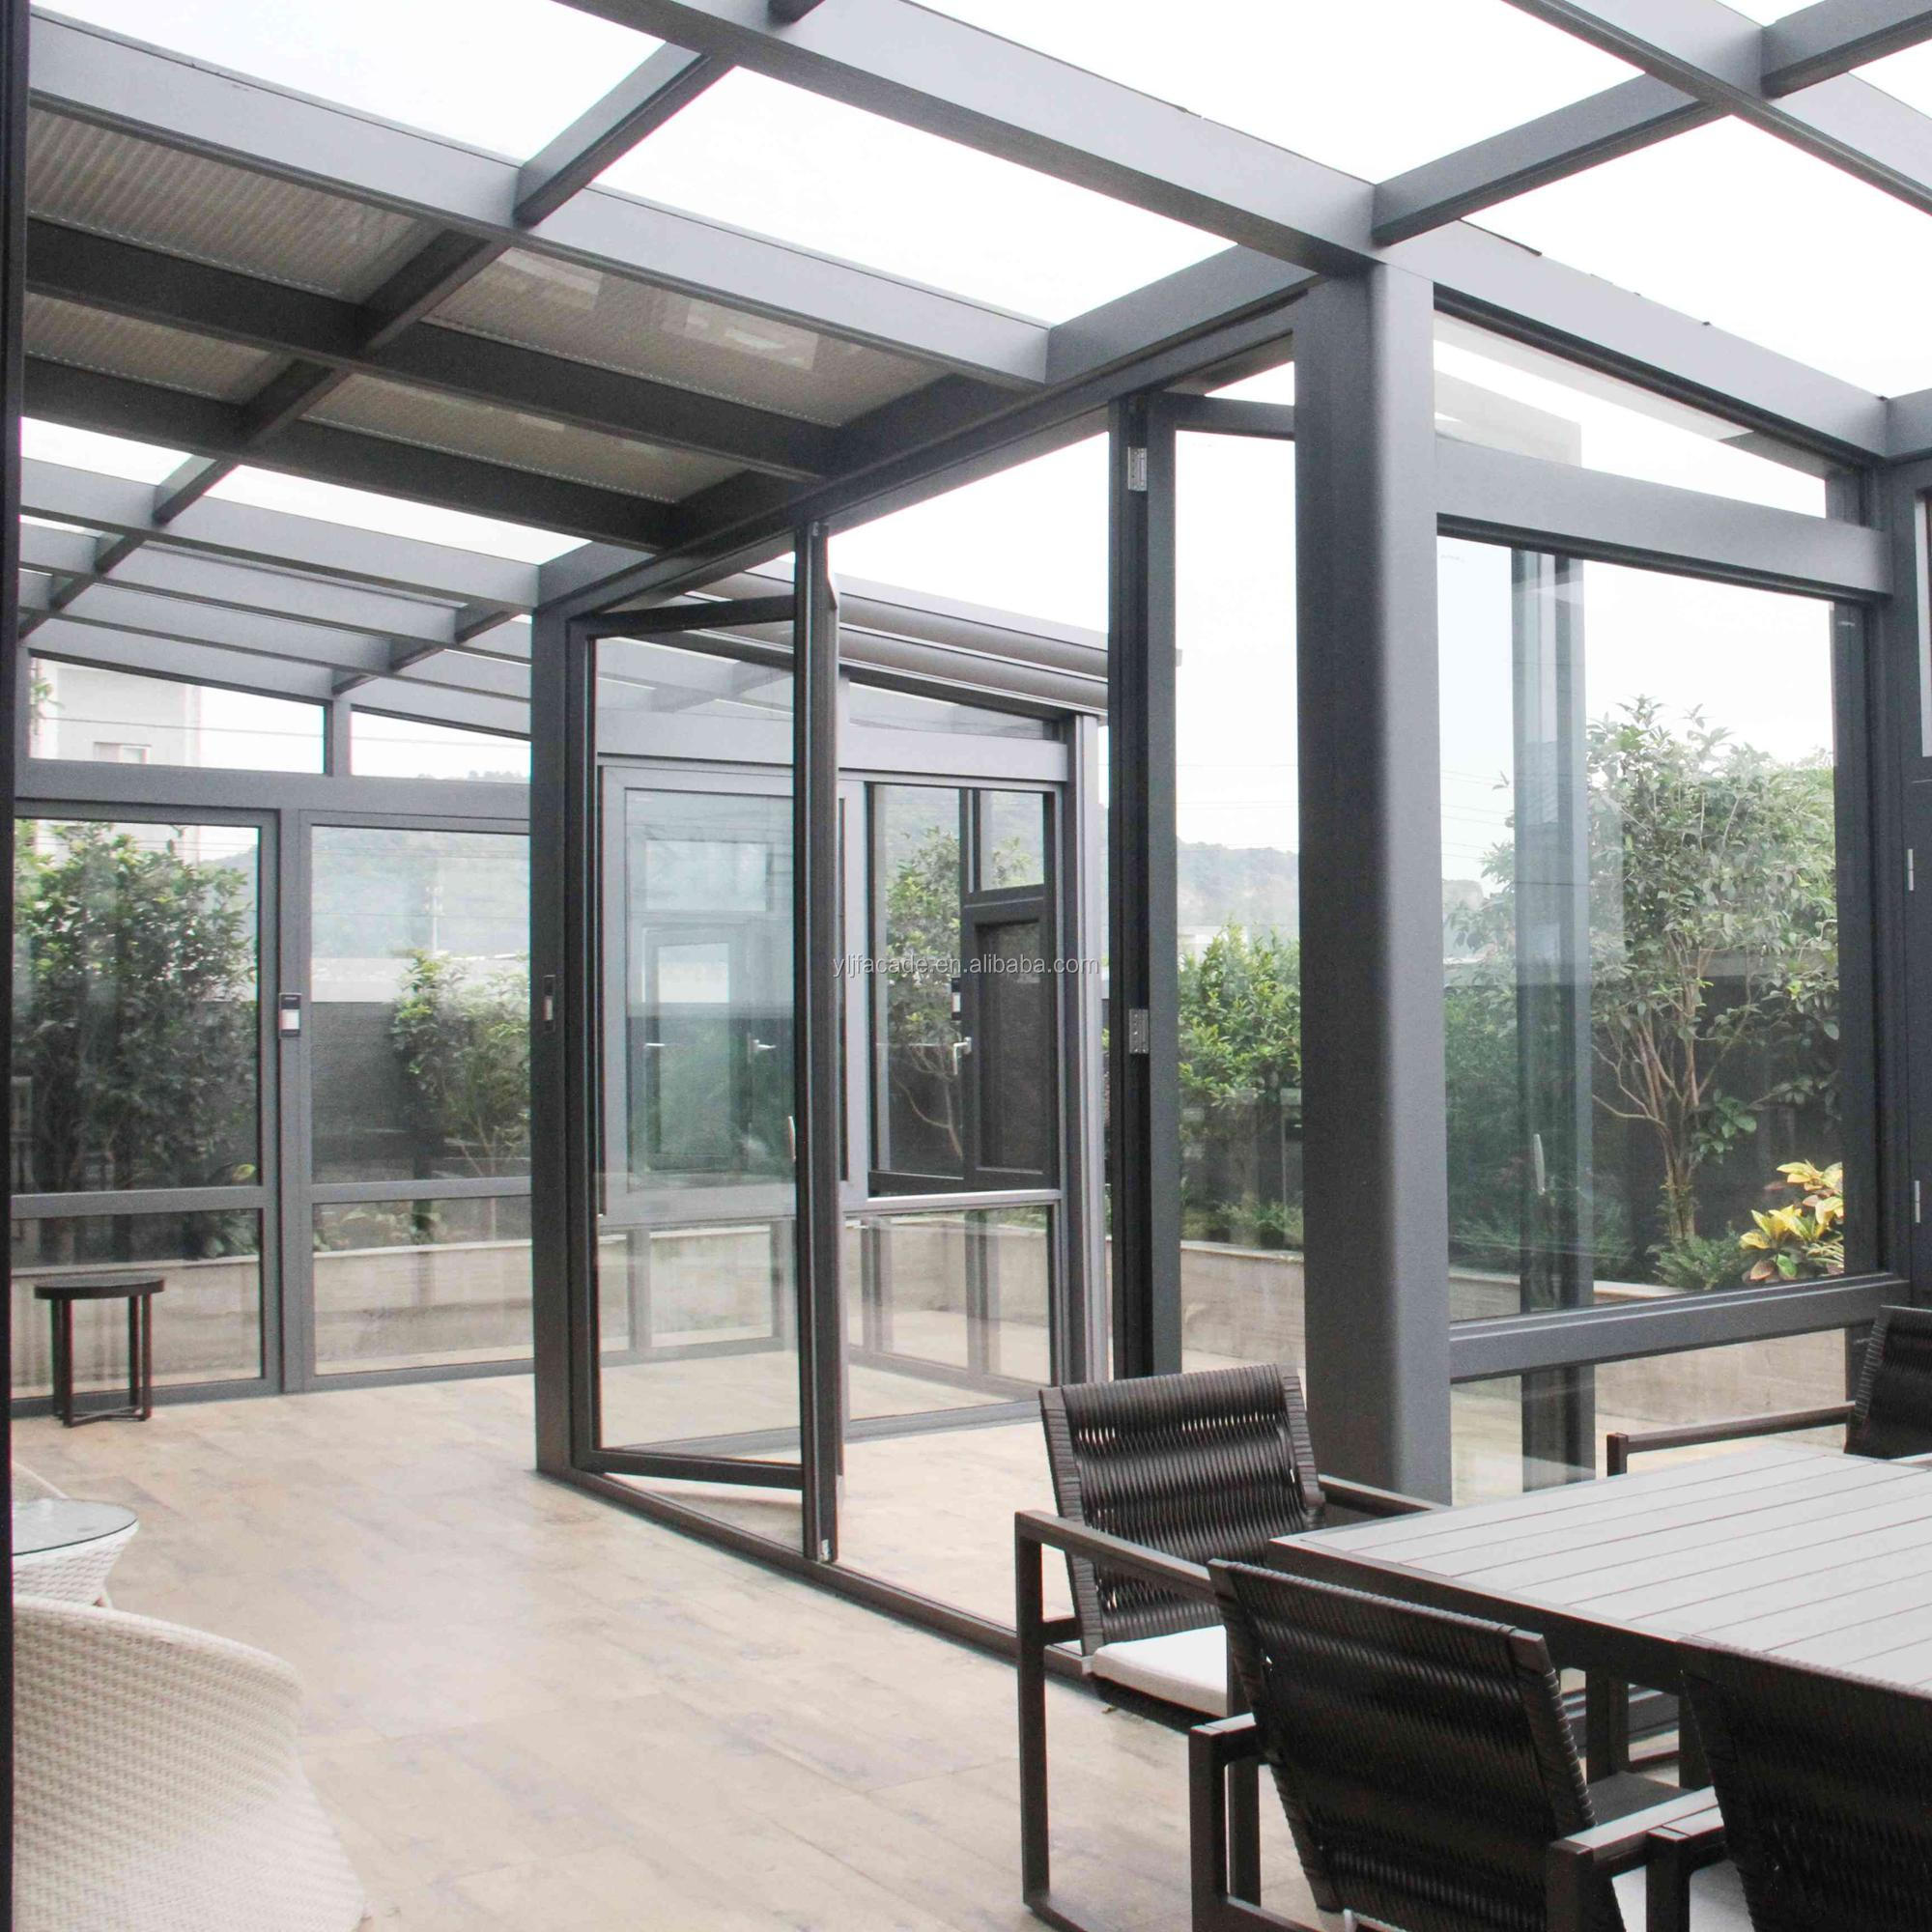 China Glass Sunroom, China Glass Sunroom Manufacturers And Suppliers On